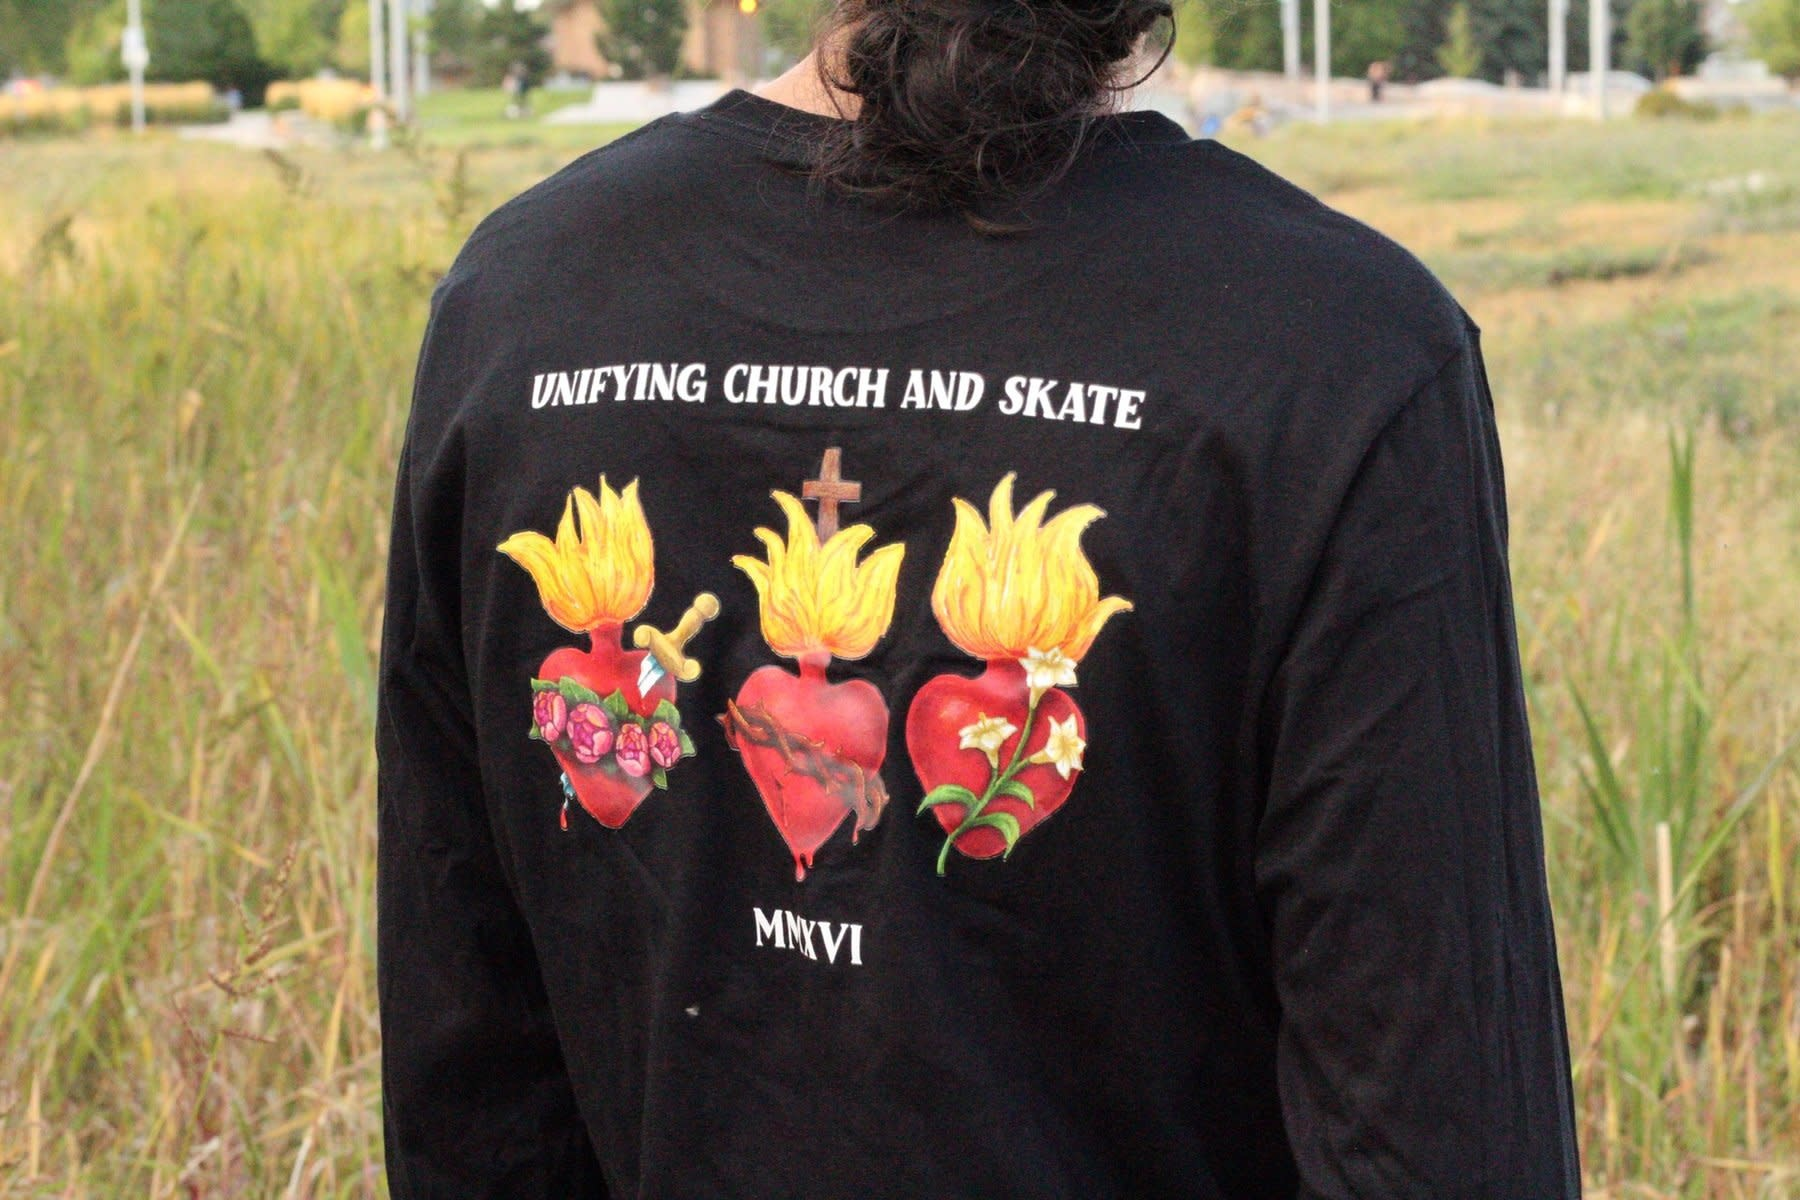 Motherboards Unifying Church and Skate T Shirt (Small)